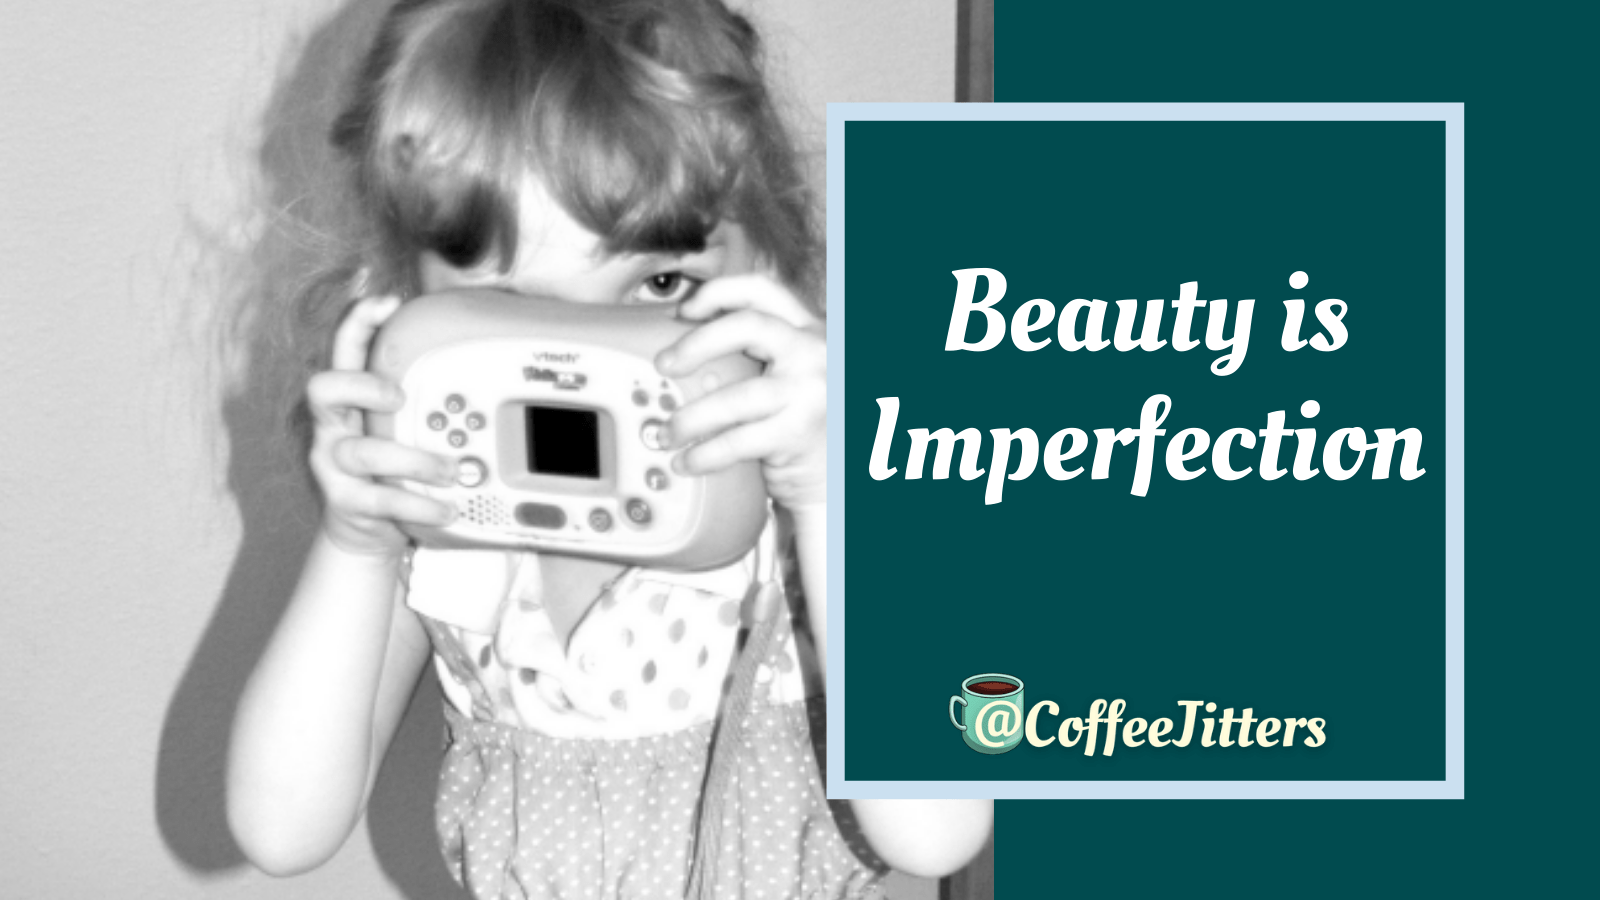 Beauty is imperfection